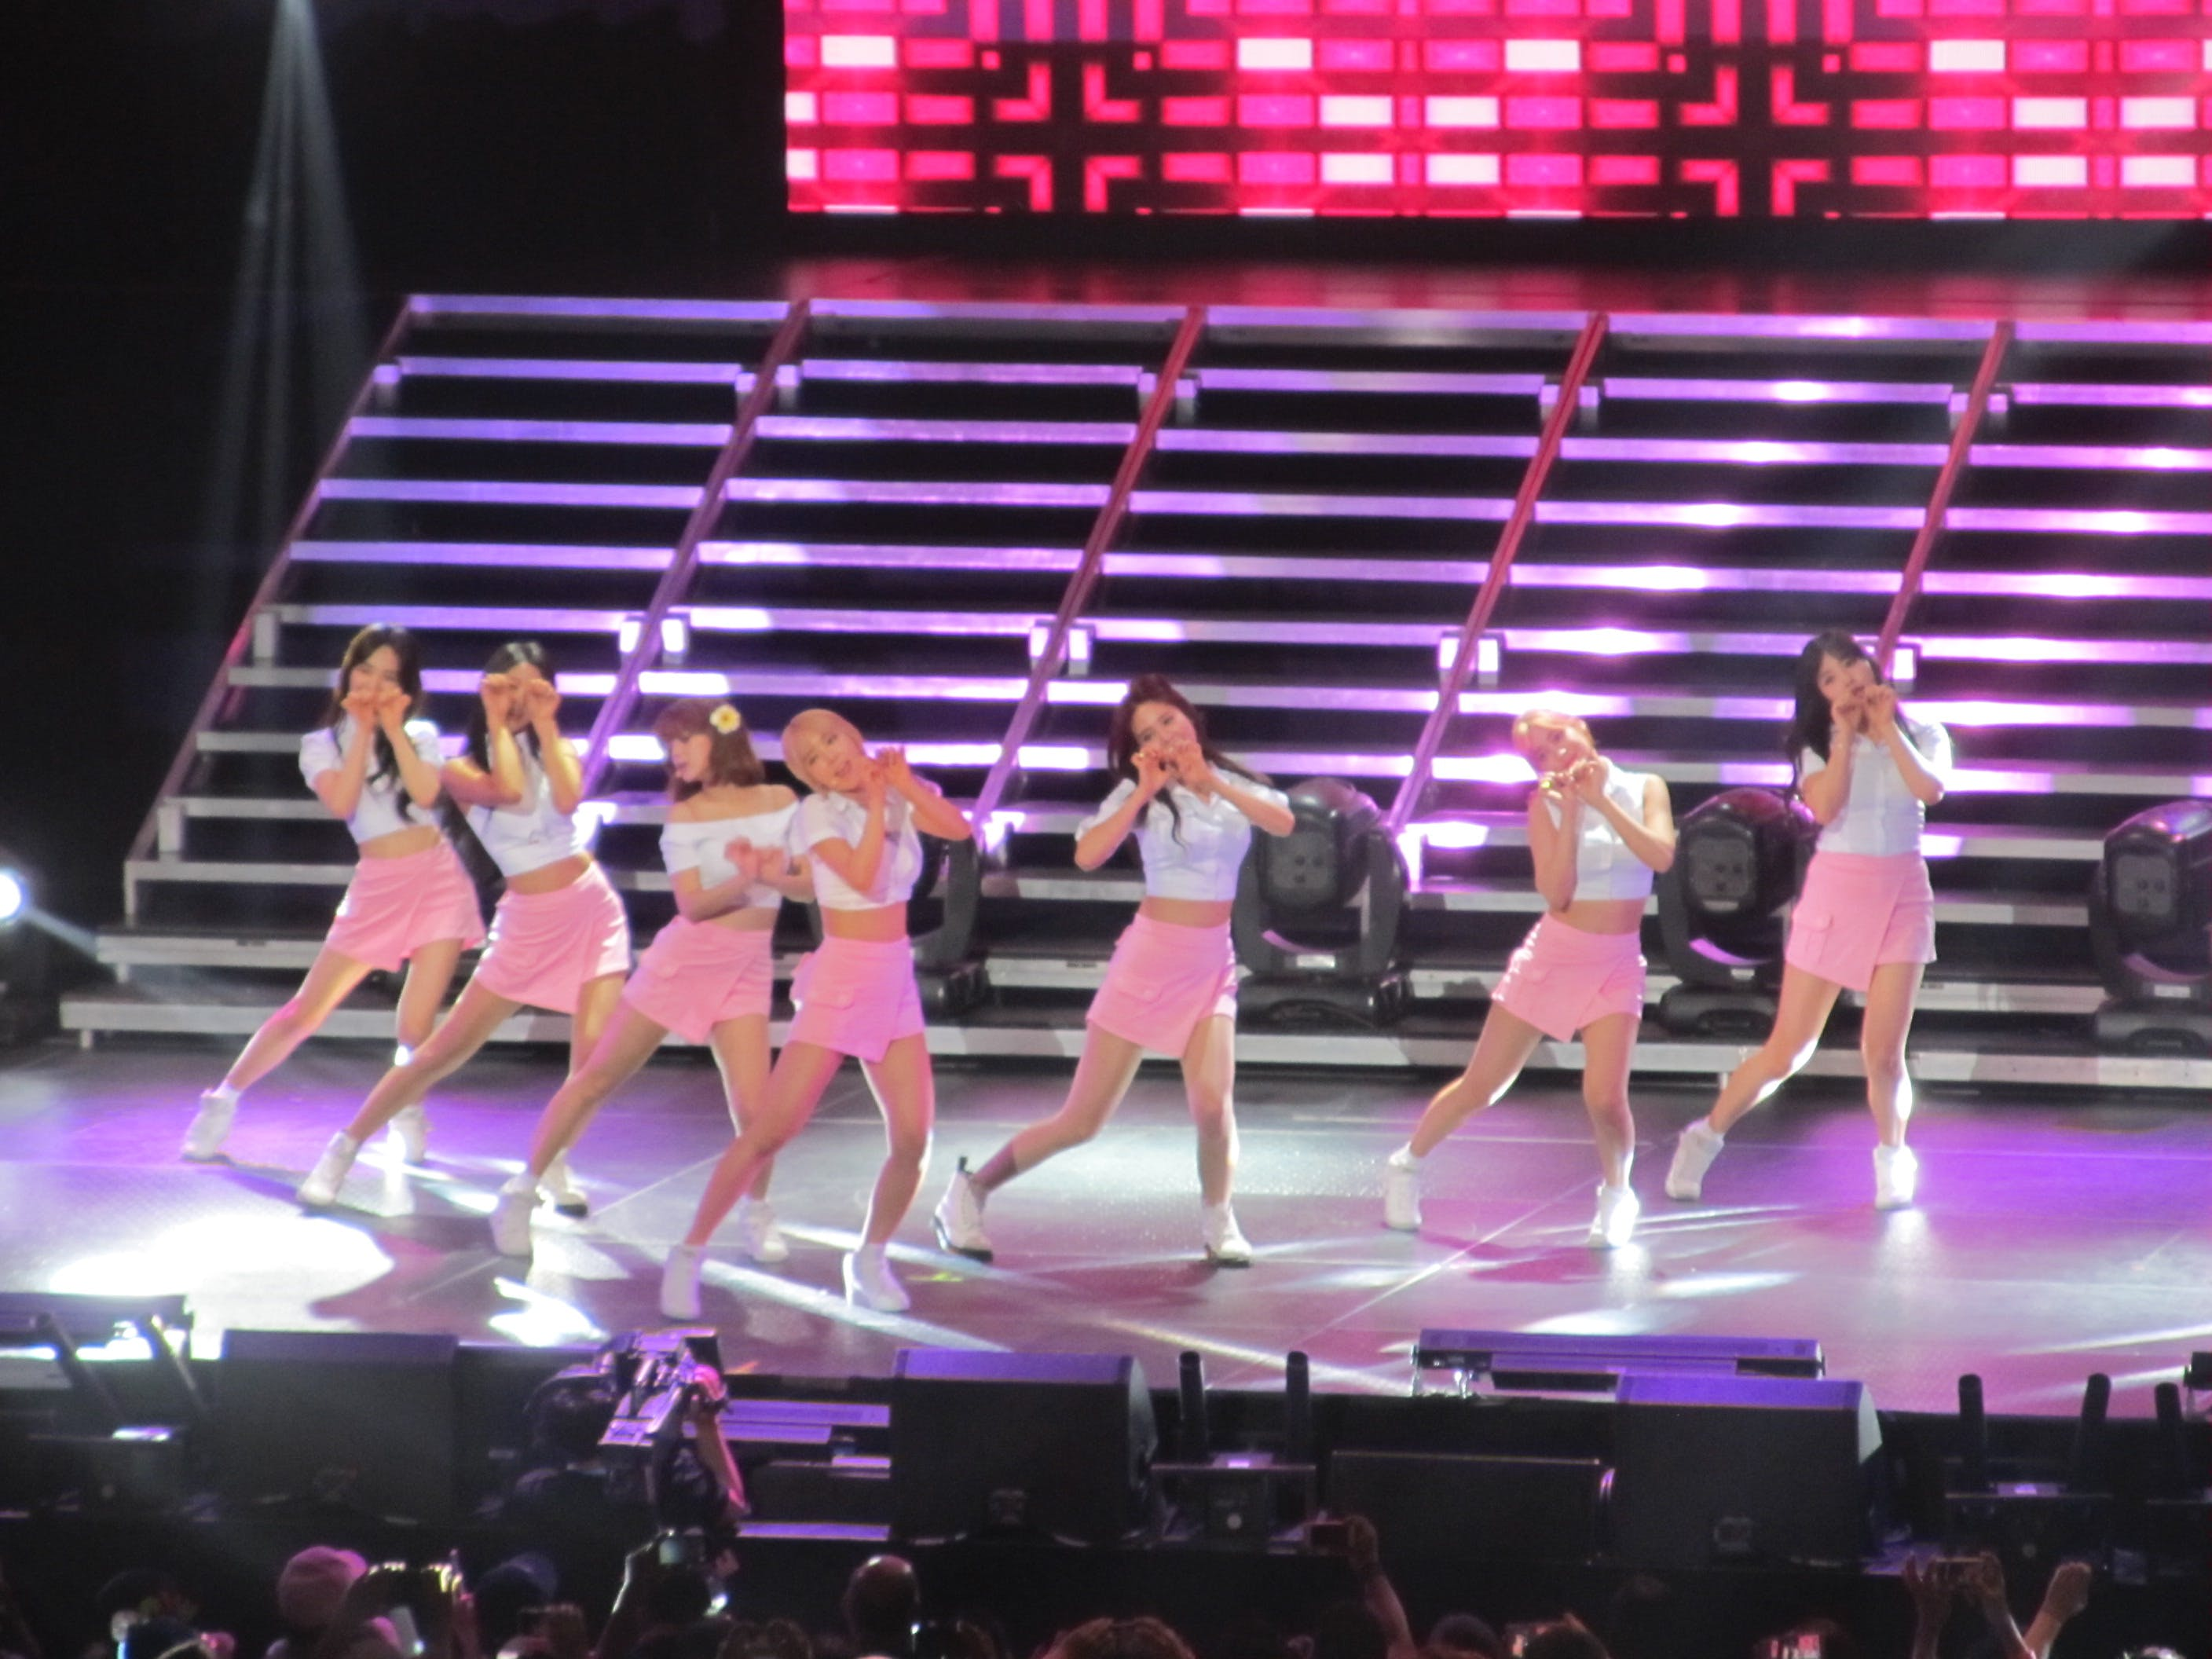 AoA in performance